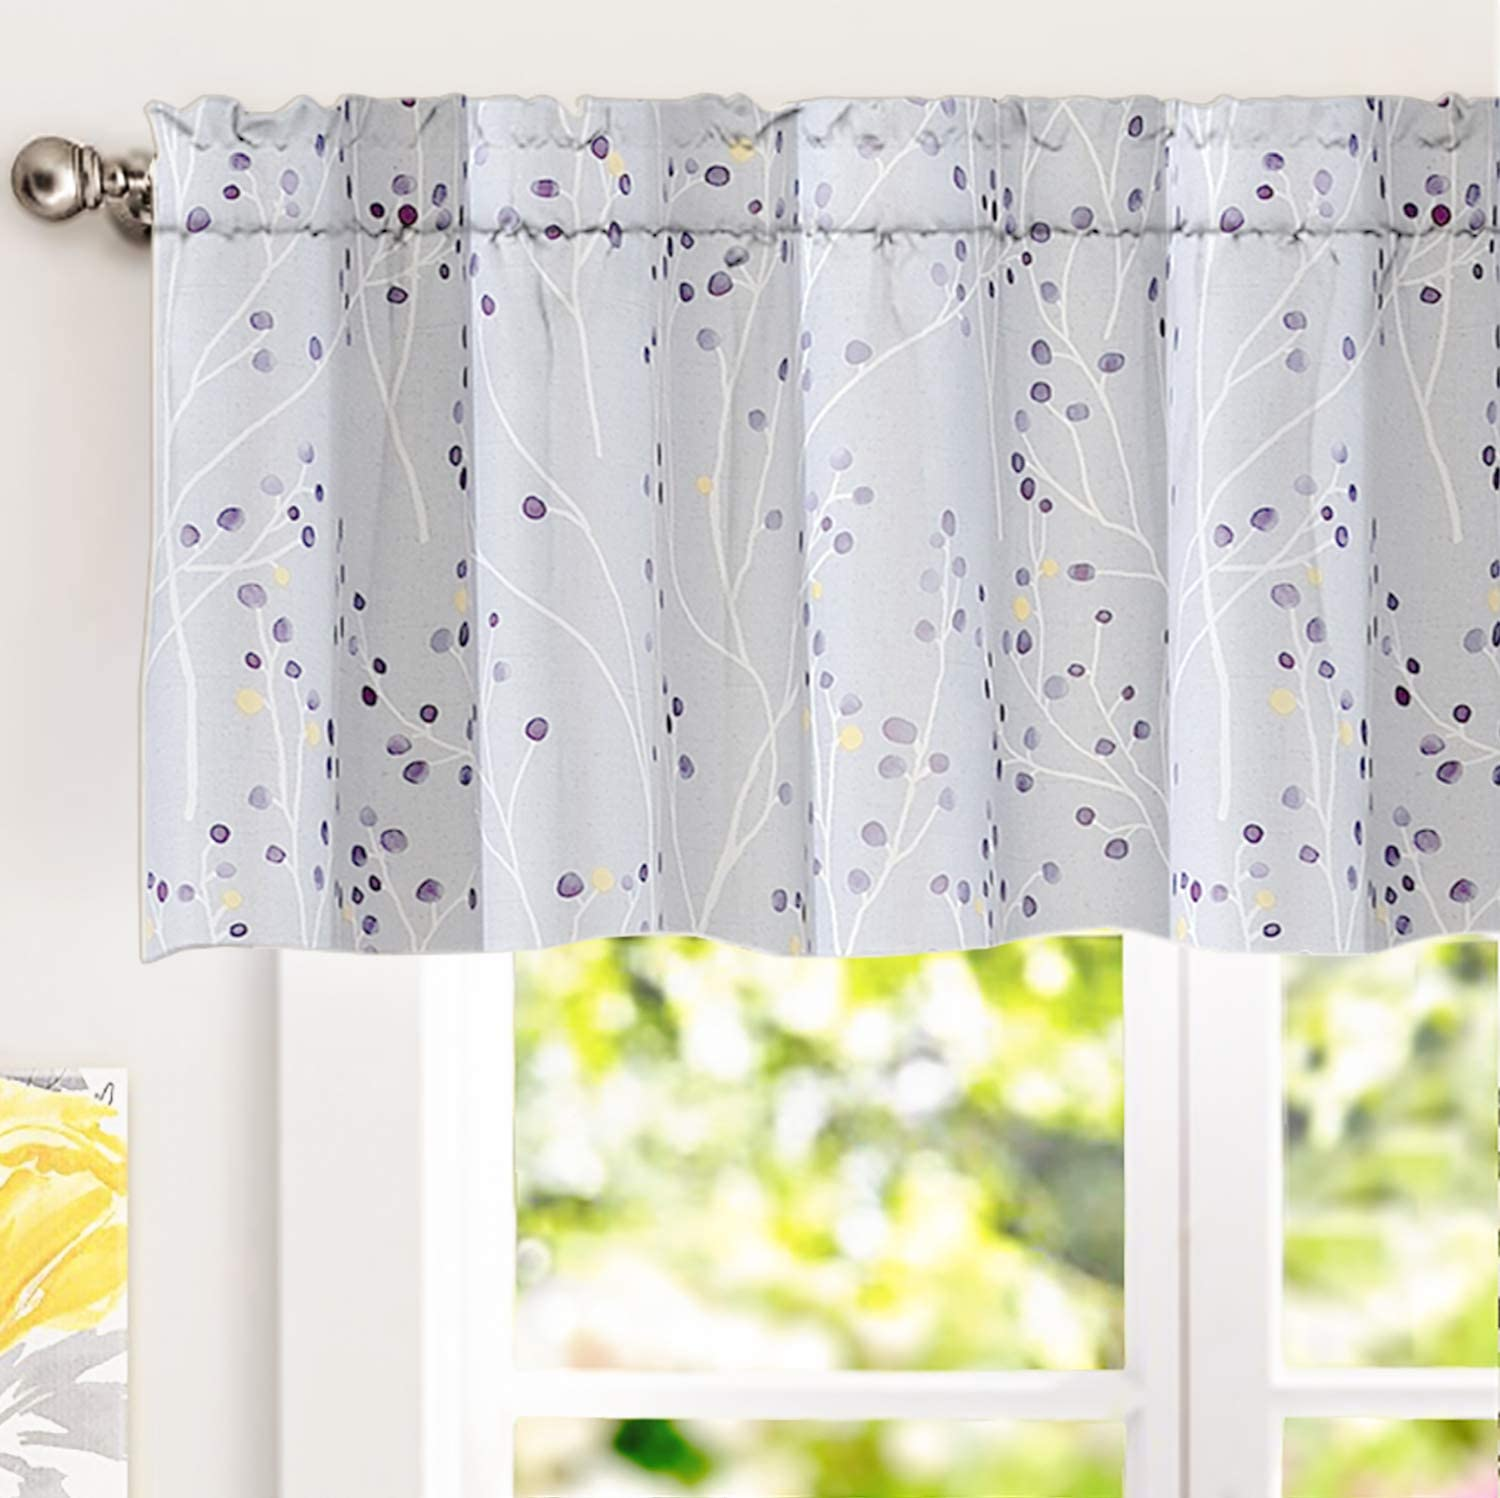 Elegant Ink Paint Windows Curtain For Living Room Decoration Polyester Woven New